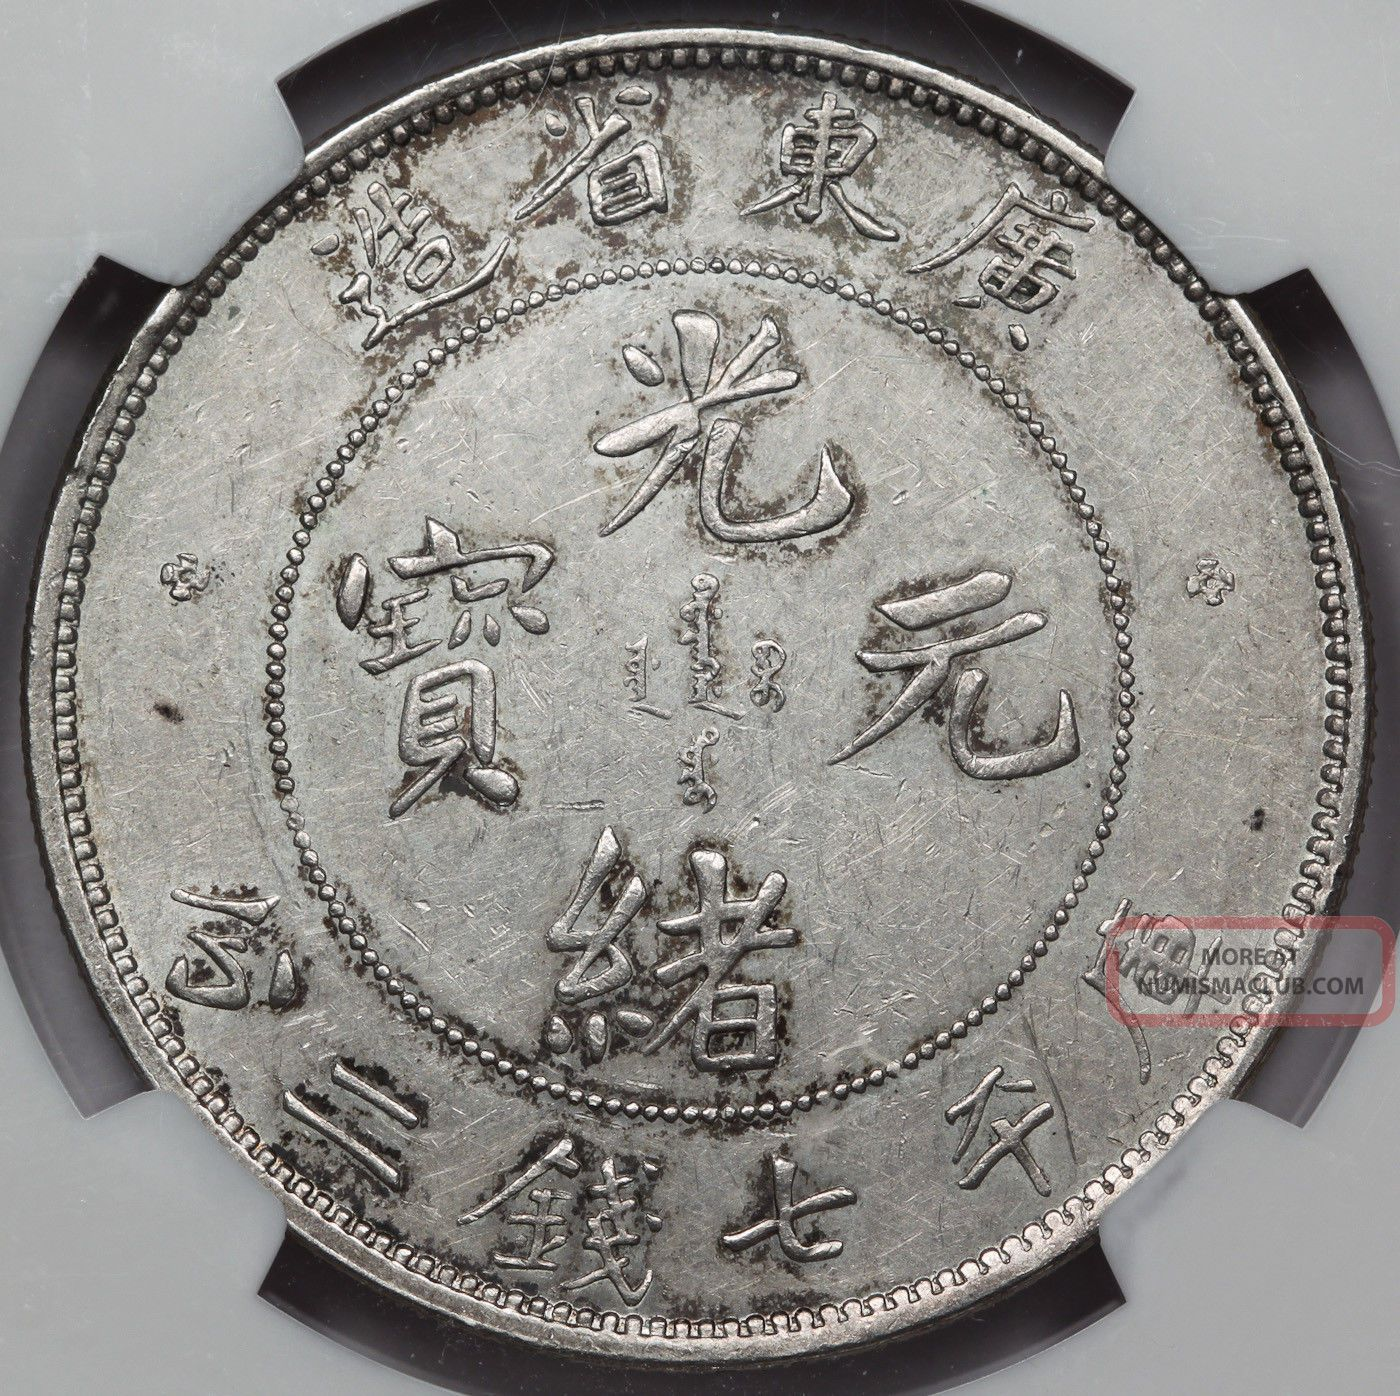 China Kwangtung 1890 1908 1 Dragon Dollar Silver Coin